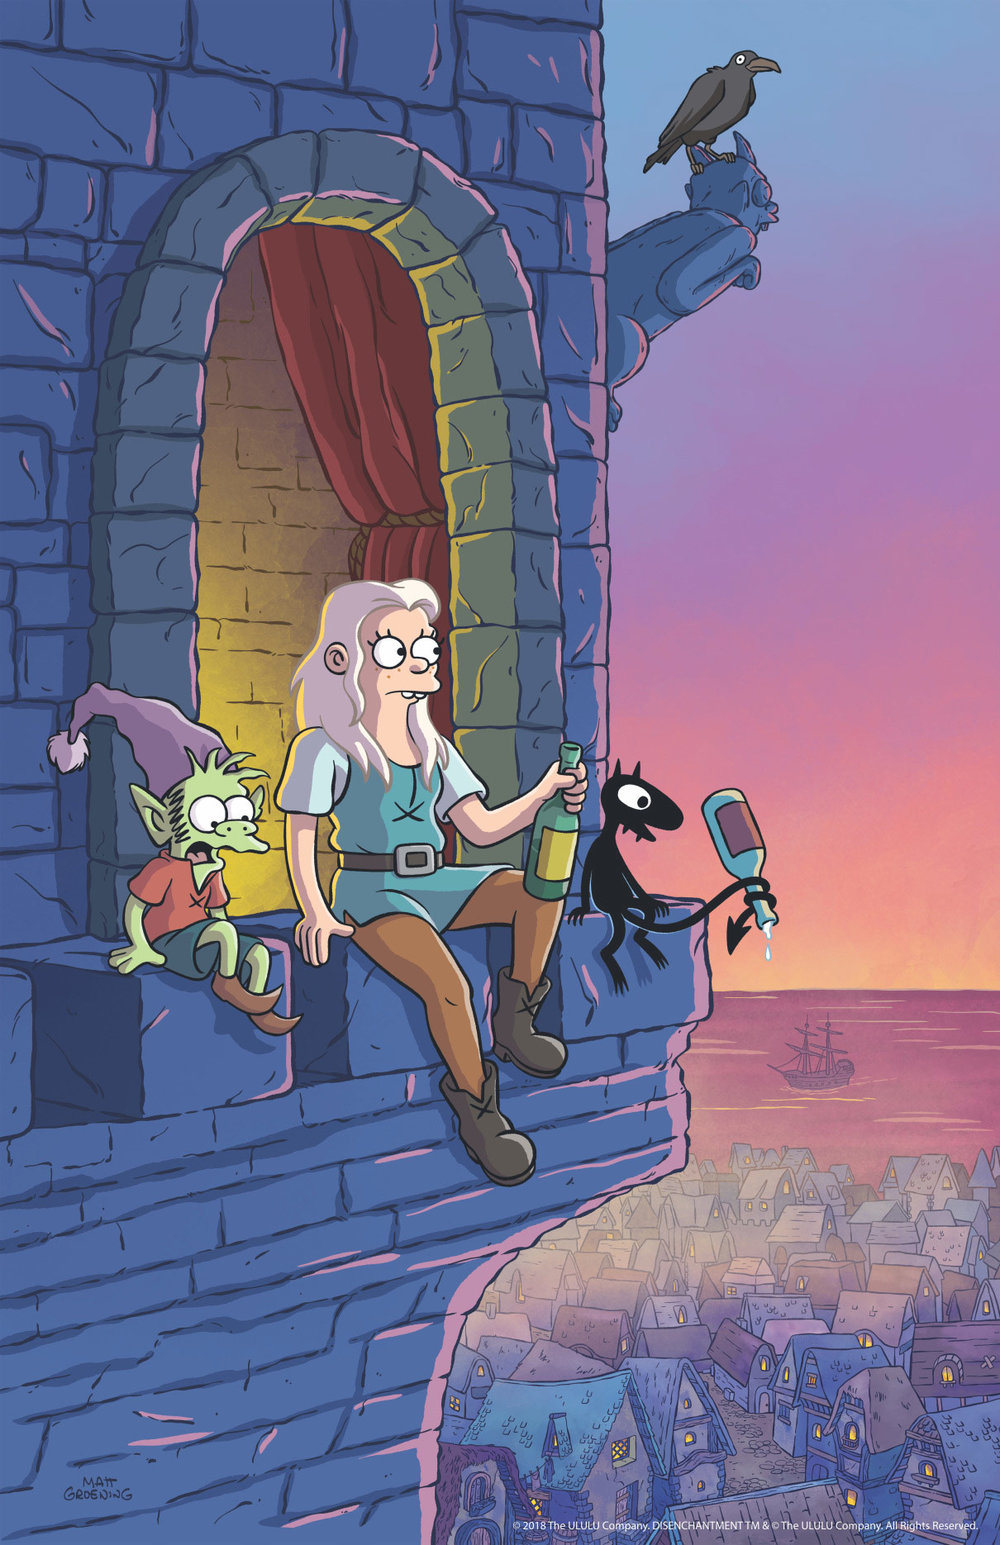 first-look-at-matt-groenings-animated-fantasy-netflix-series-disenchantment5